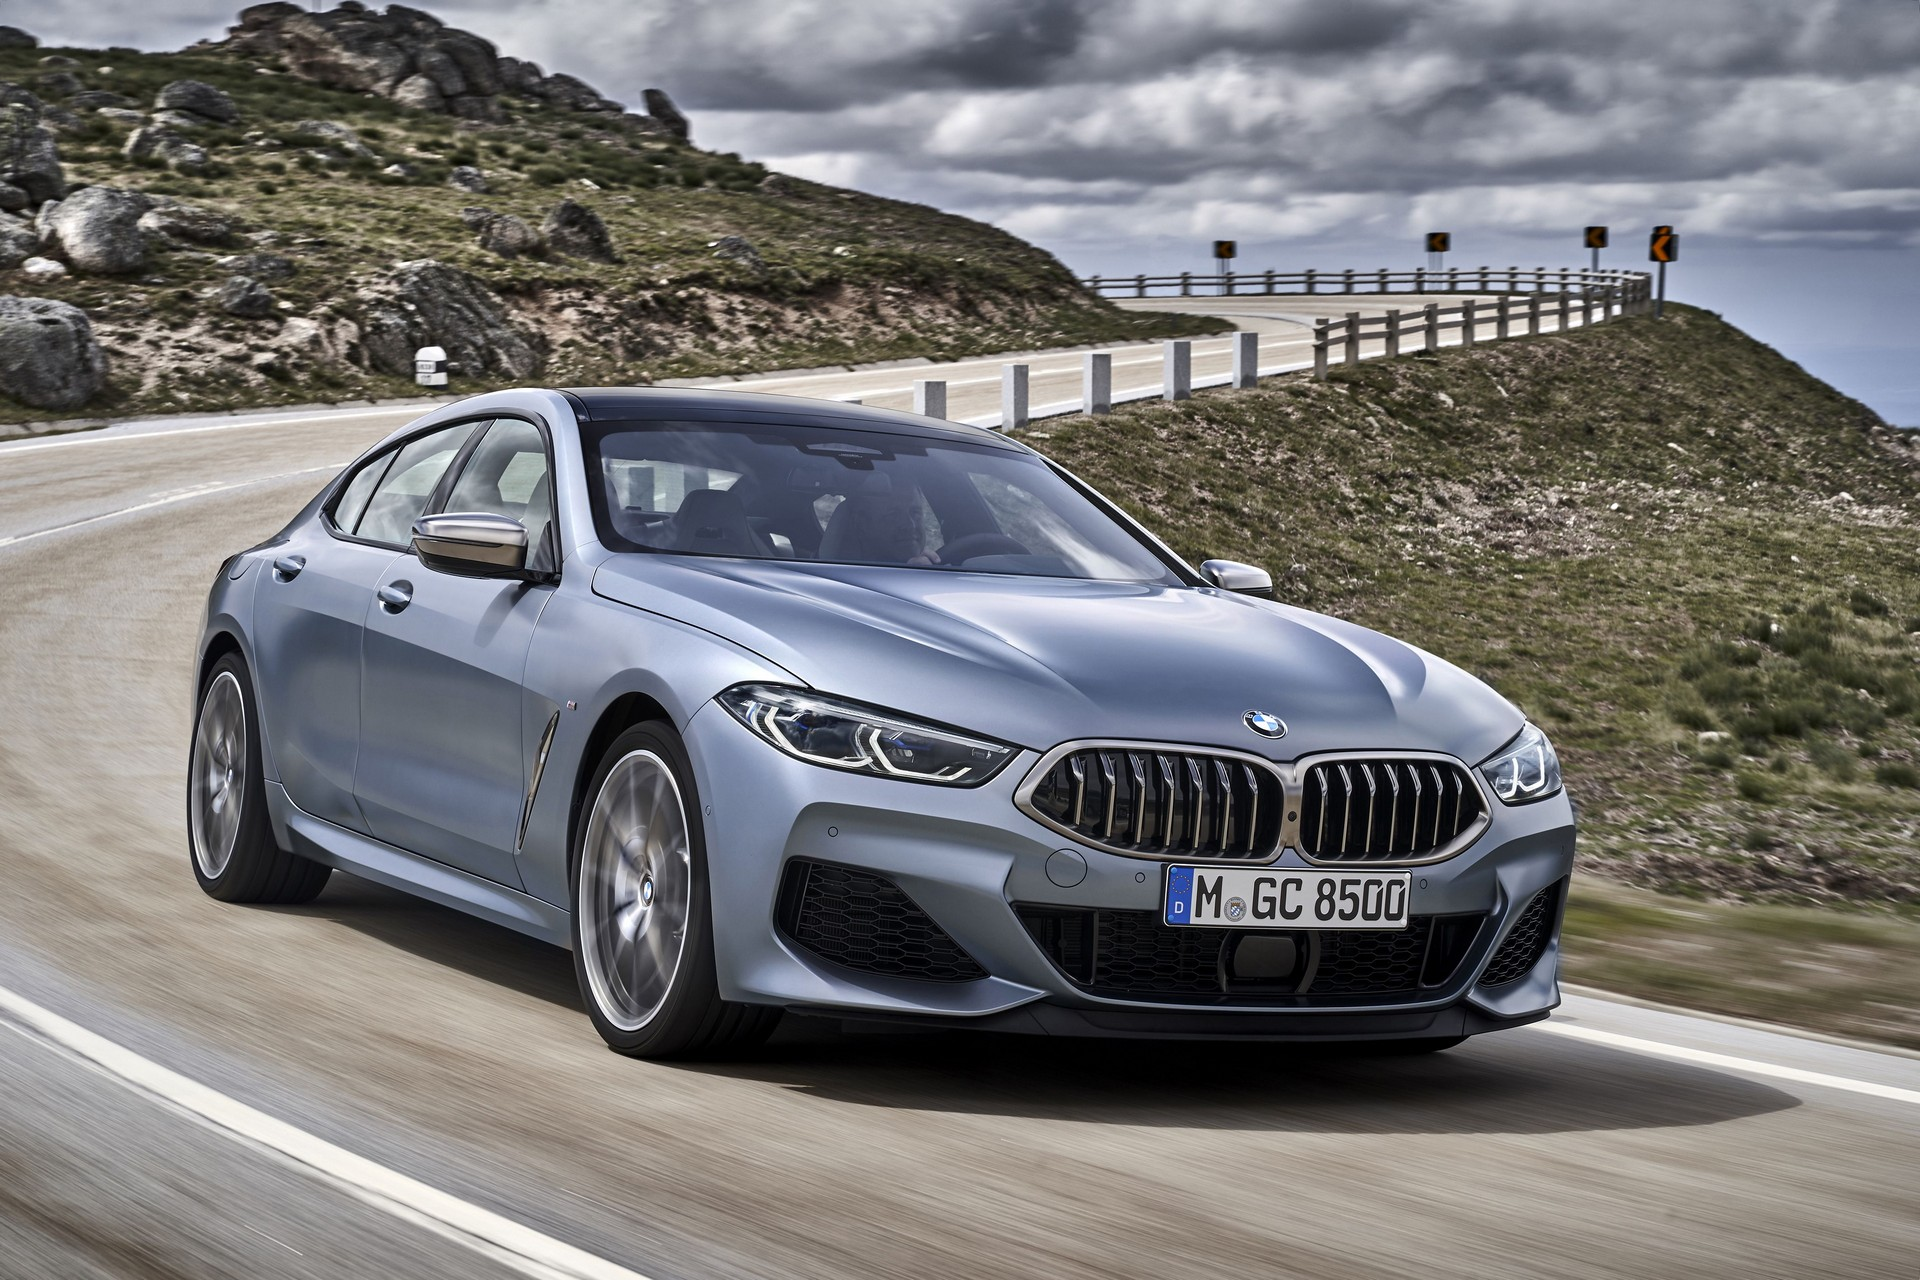 Новый БМВ 8 Series Gran Coupe 2020 цена, фото, видео характеристики Гран Купе